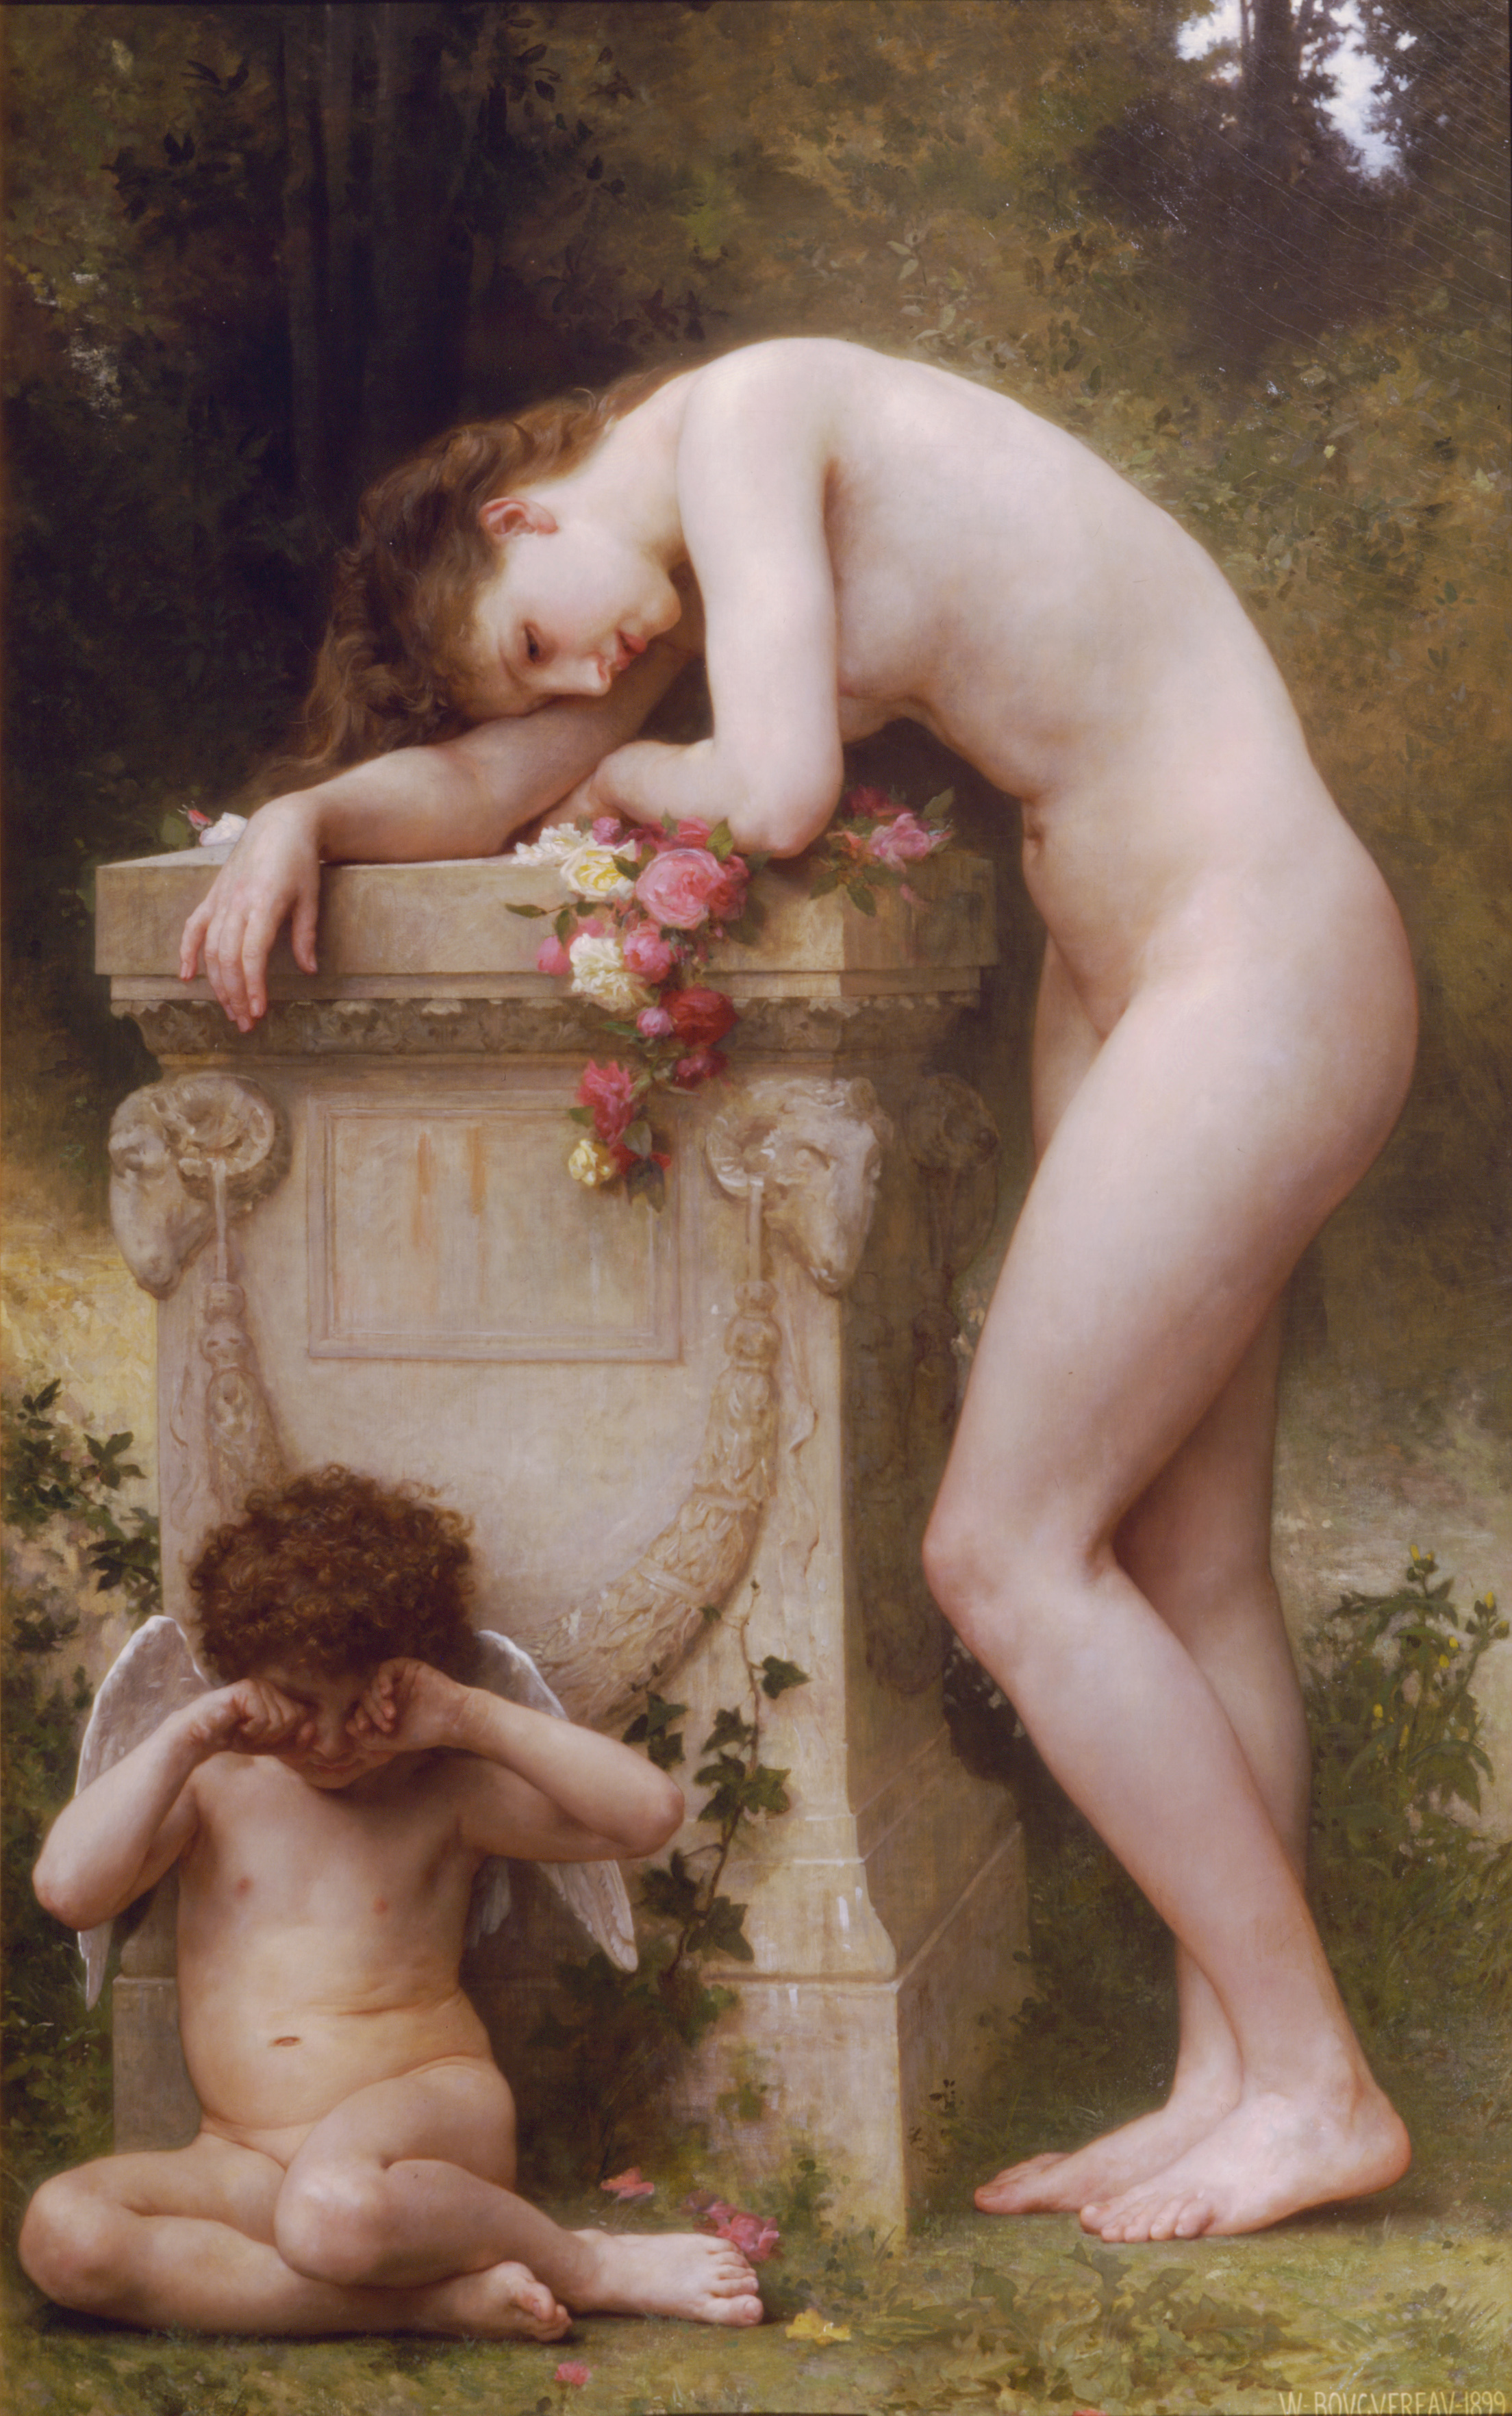 http://bitterhermit.files.wordpress.com/2008/08/william-adolphe_bouguereau_elegy_1899.jpg